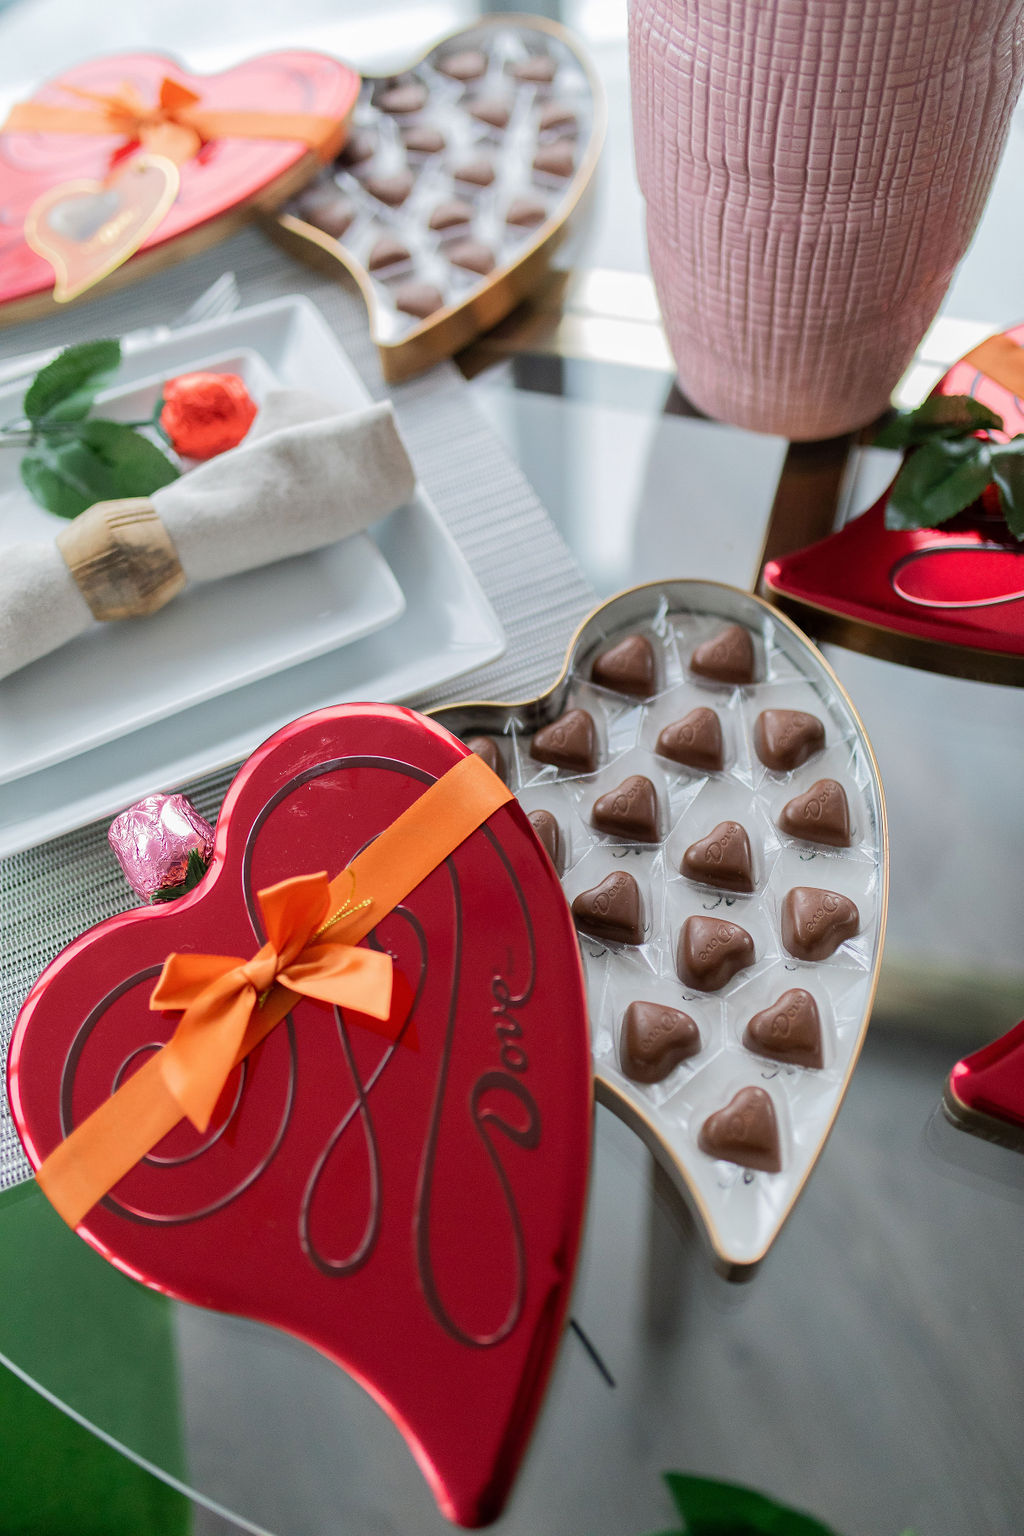 Chocolate gift ideas for Valentine's day